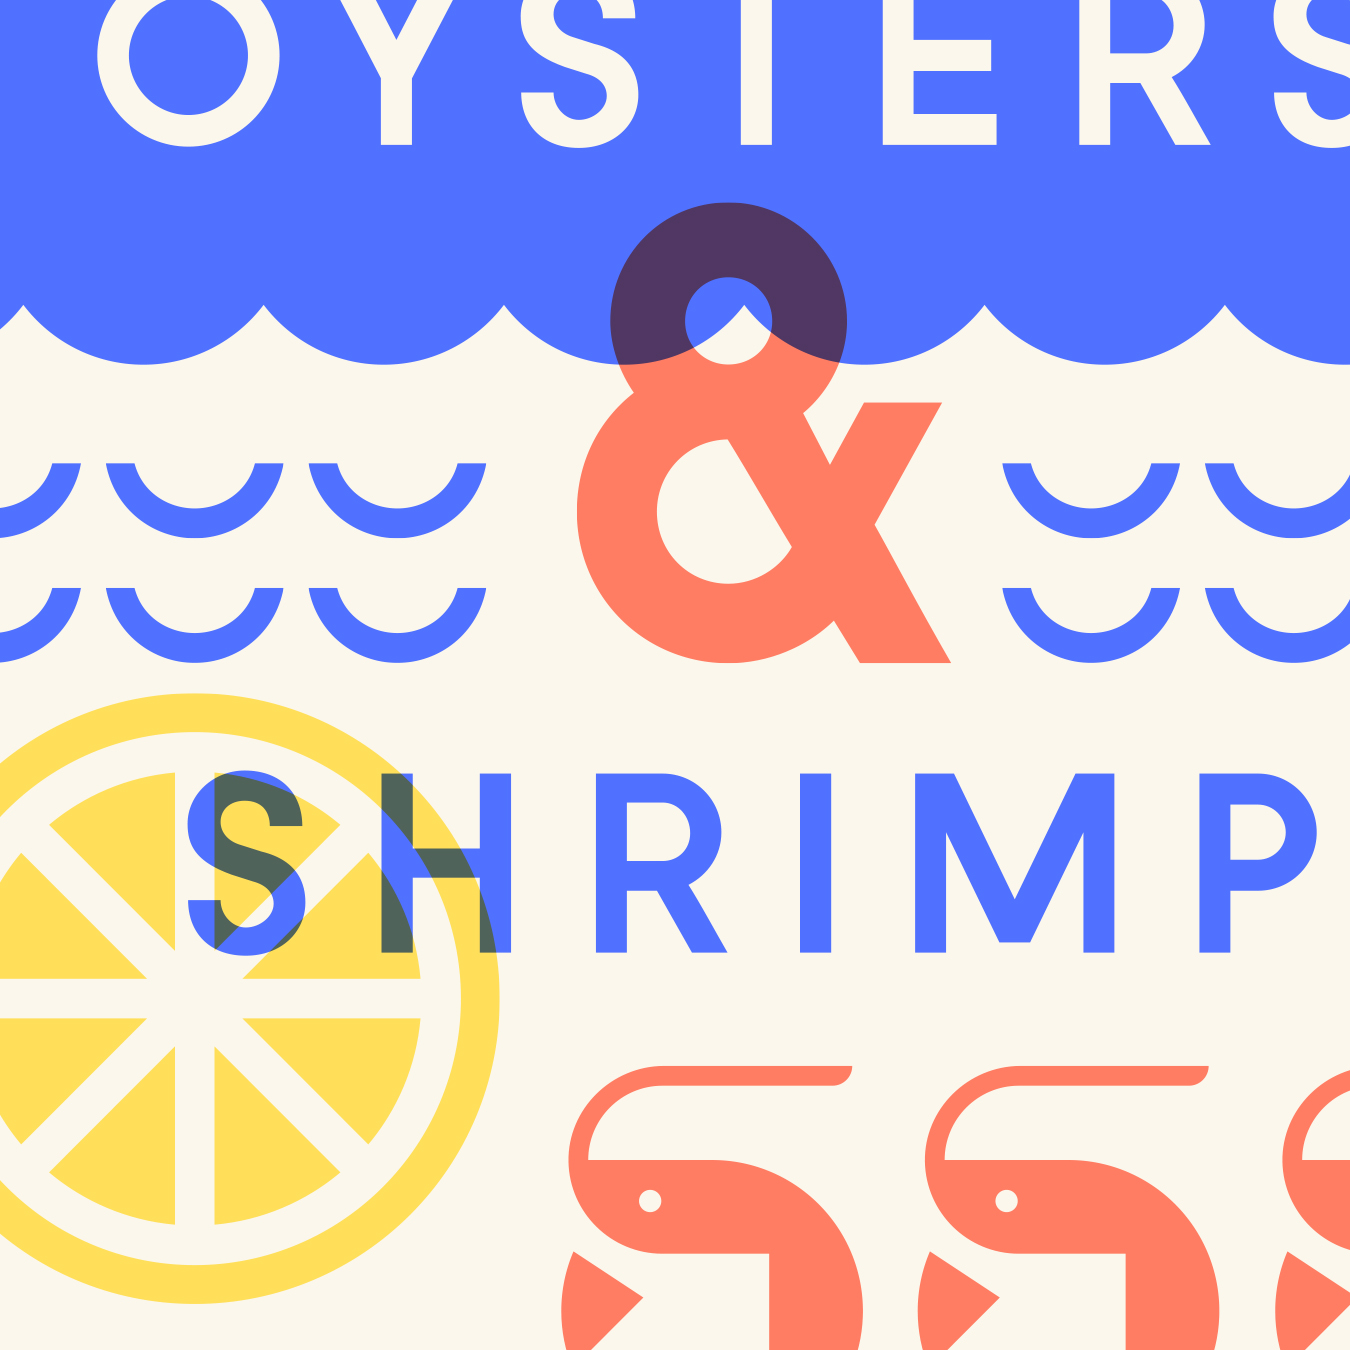 Ella & Ollie's Oysters and Shrimp Illustration Detail